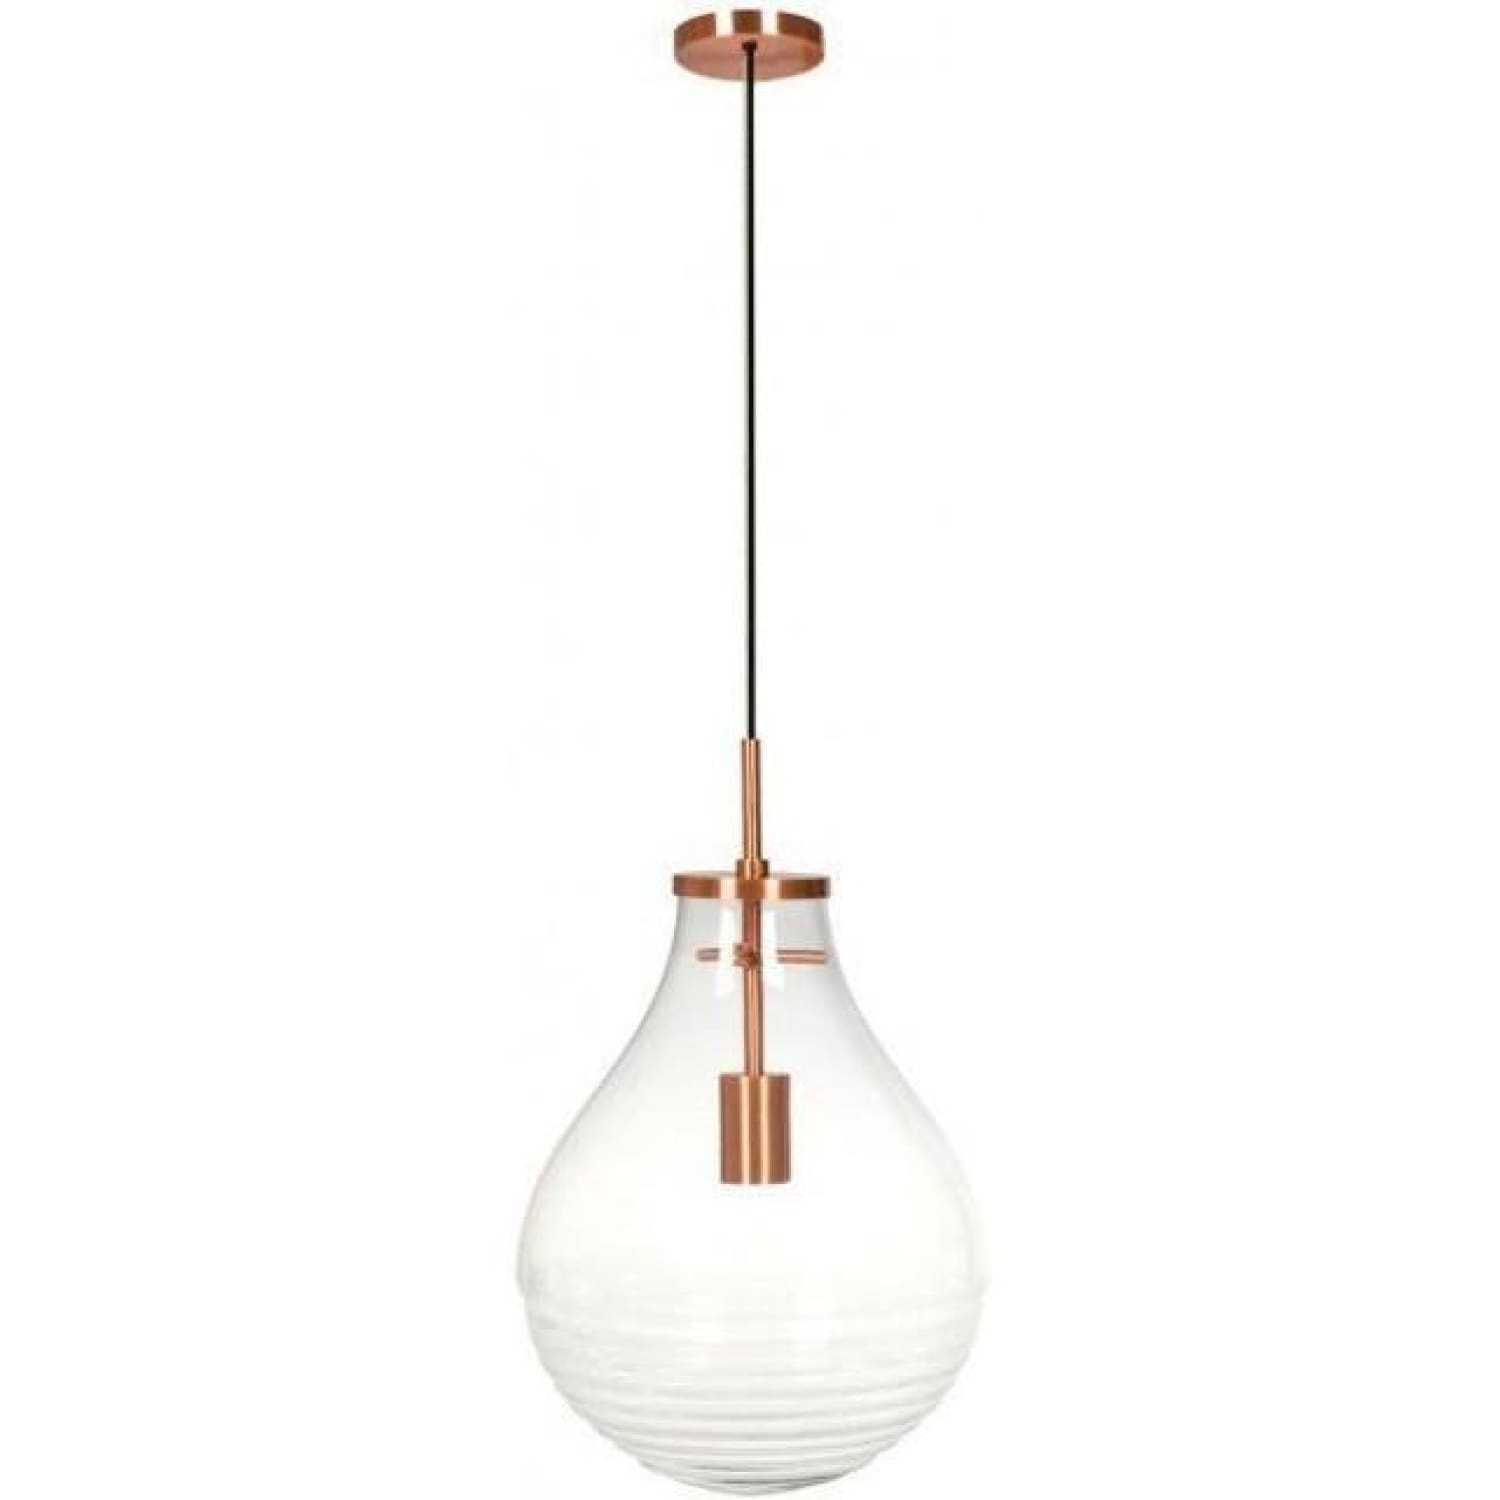 Lampe Suspendue - Tamo Large Transparent - Cuivre